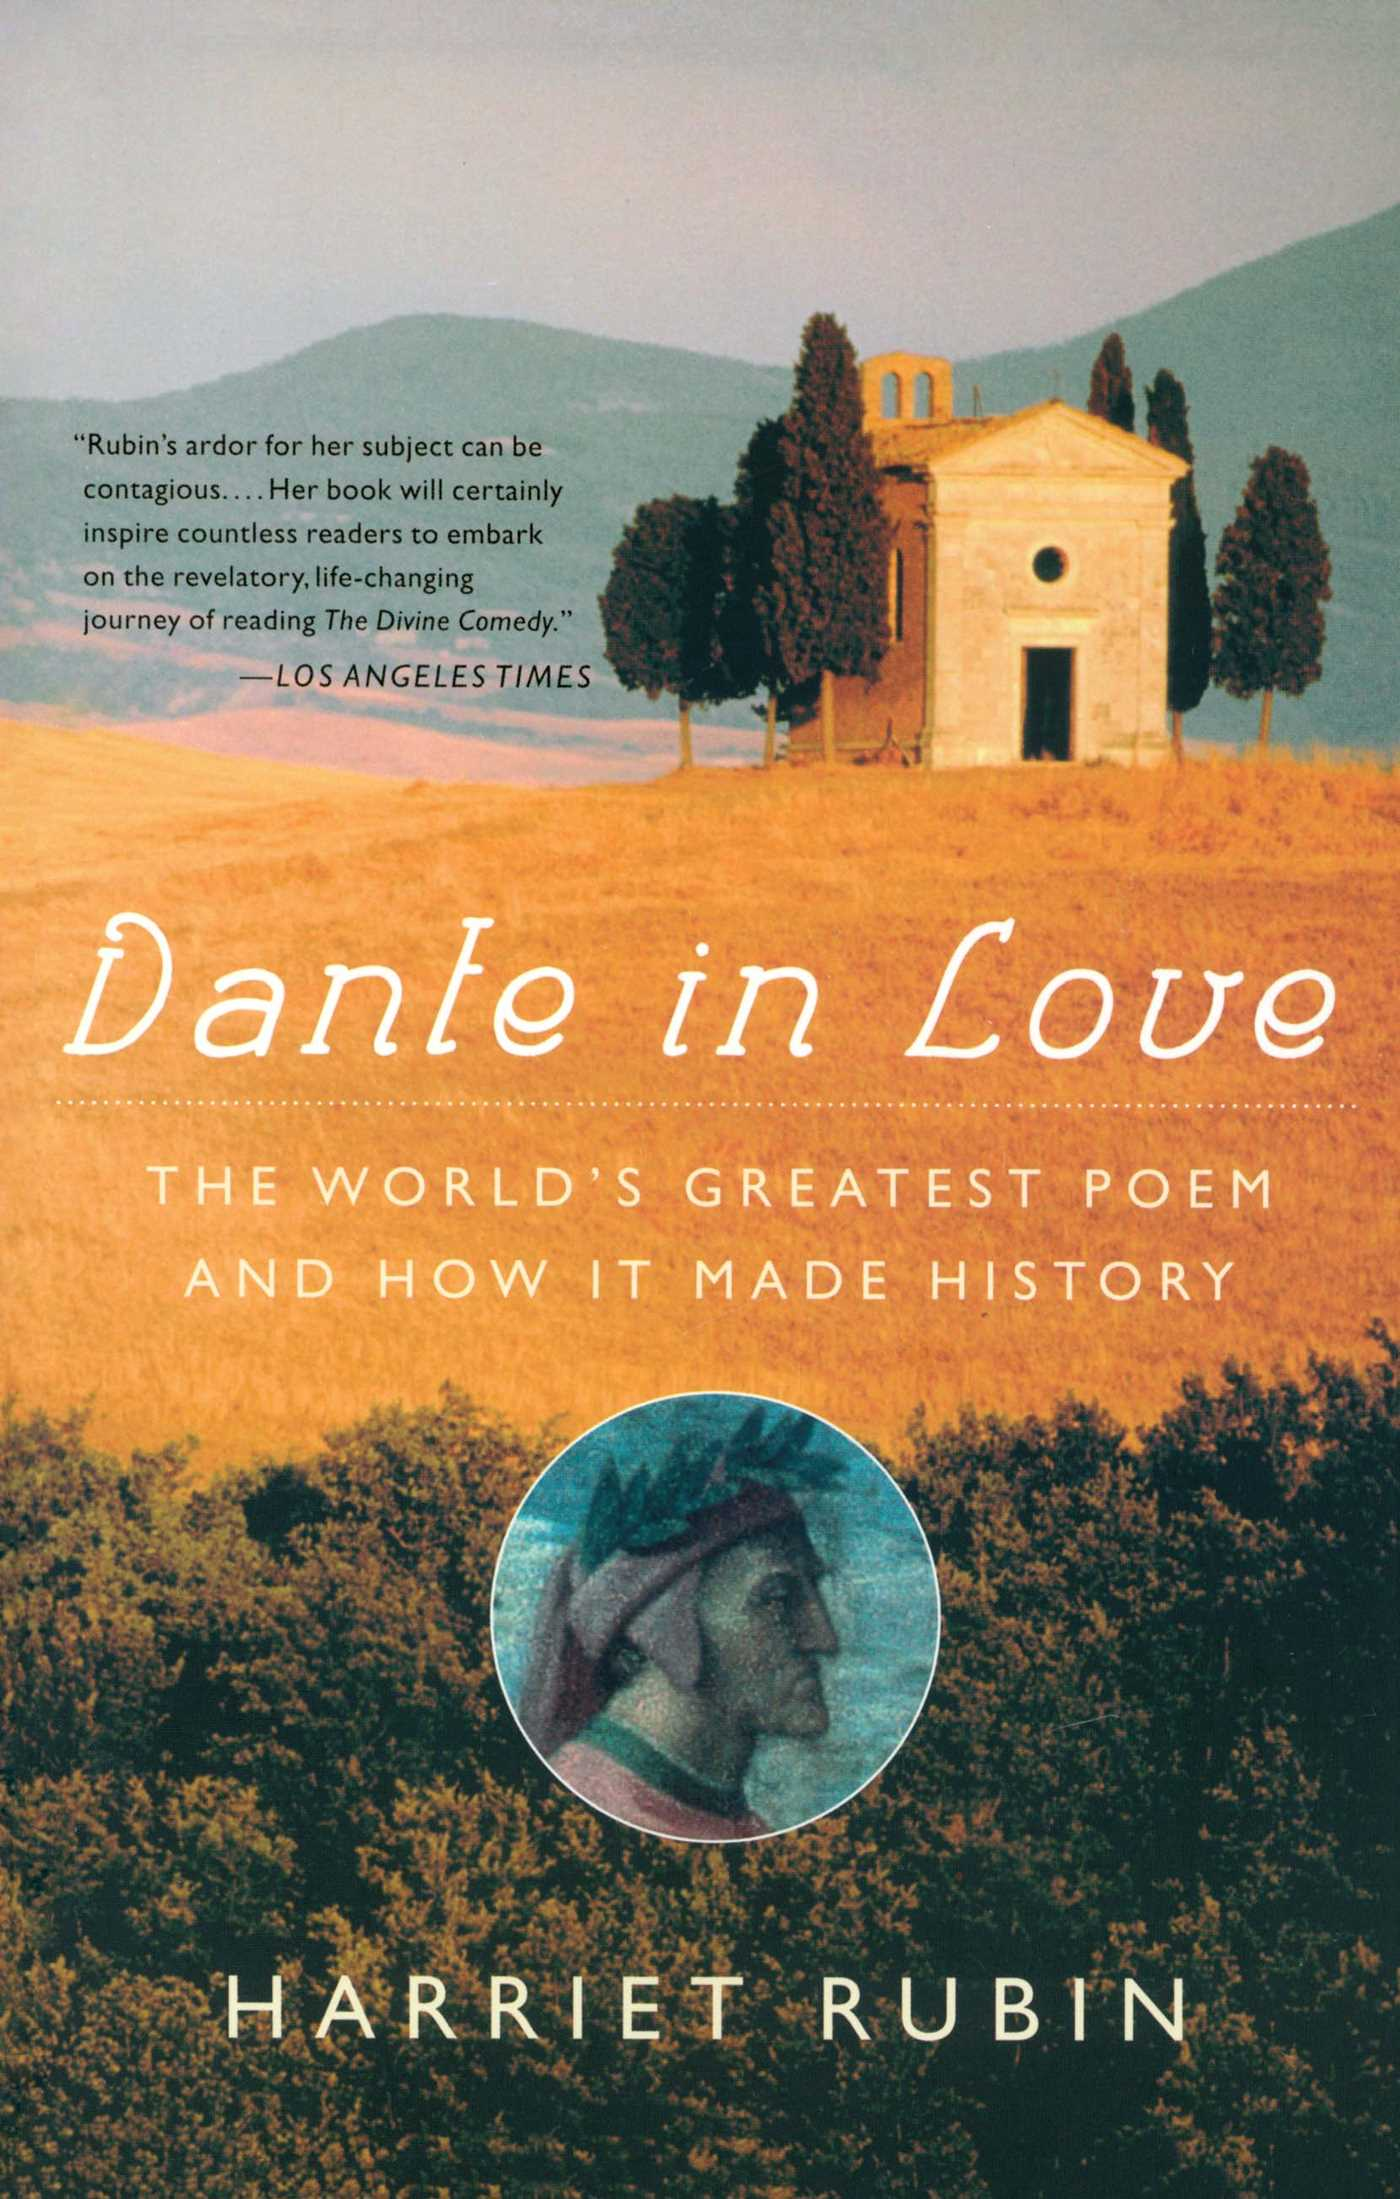 Dante-in-love-9780743262989_hr